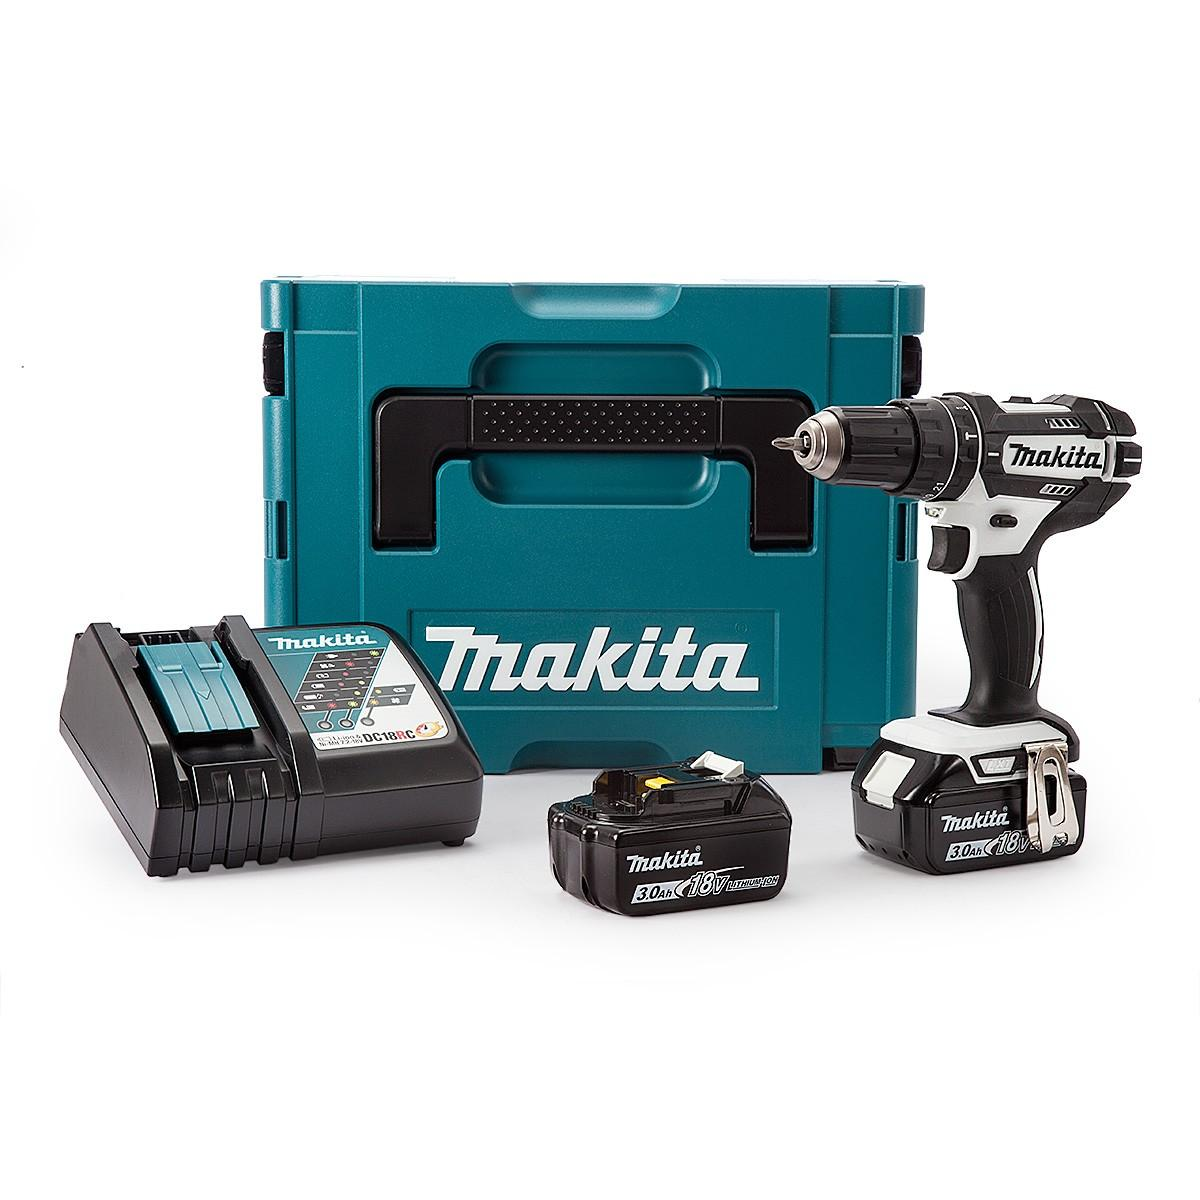 Makita DHP482RFWJ 18v Combi Drill LXT with 2x 3.0ah Batteries